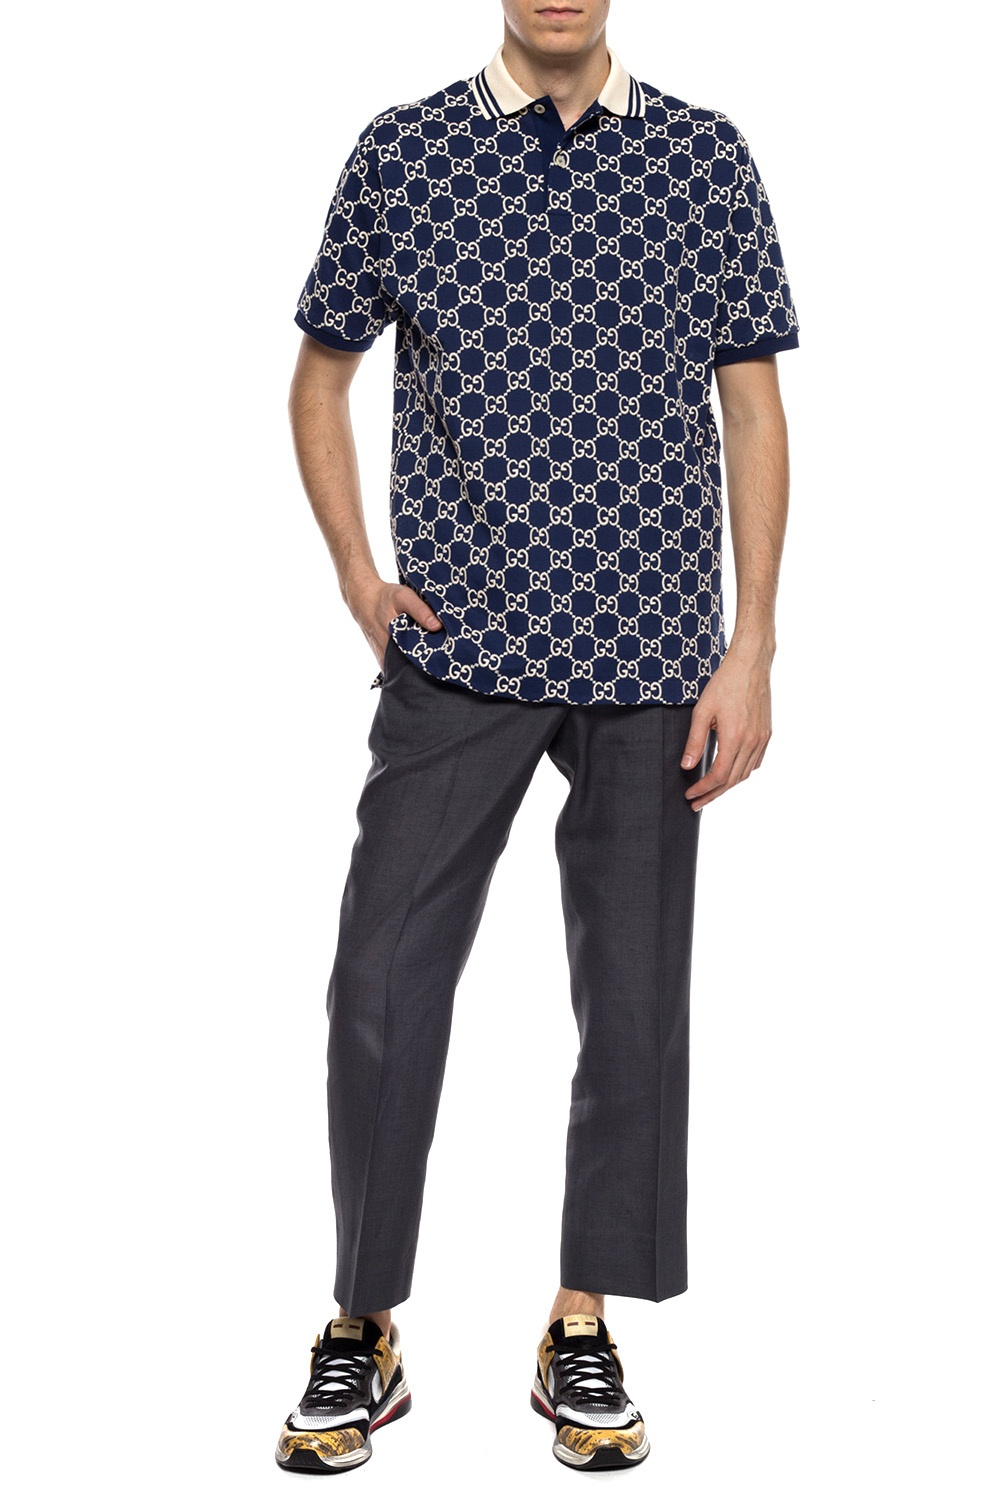 Gucci Patterned polo